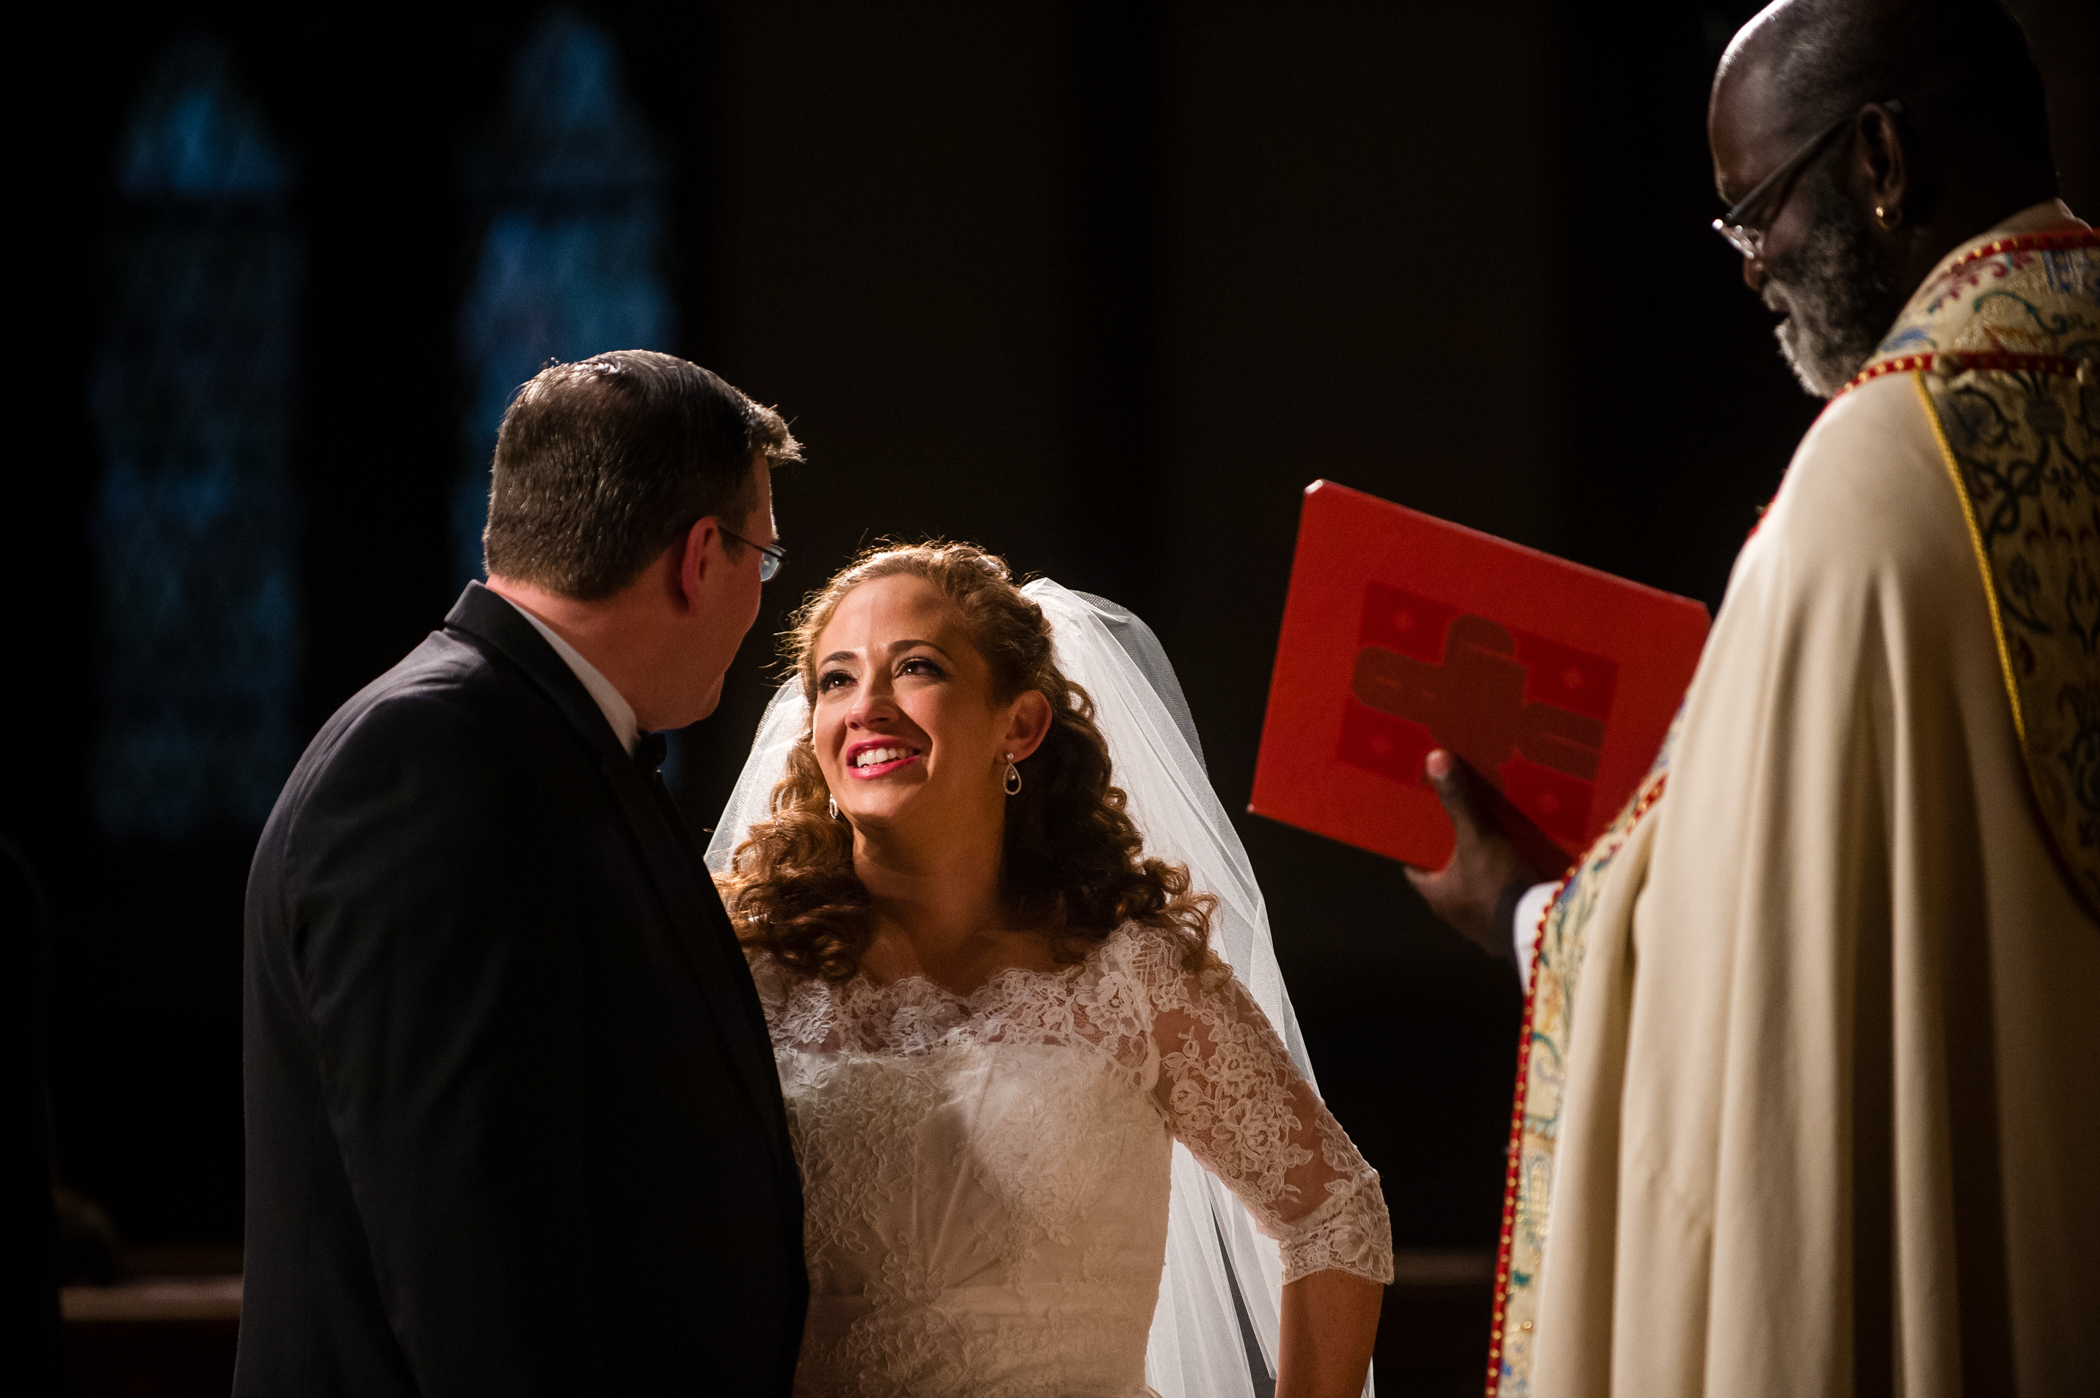 Stefy Hilmer Photography-bride and groom at church ceremony.jpg